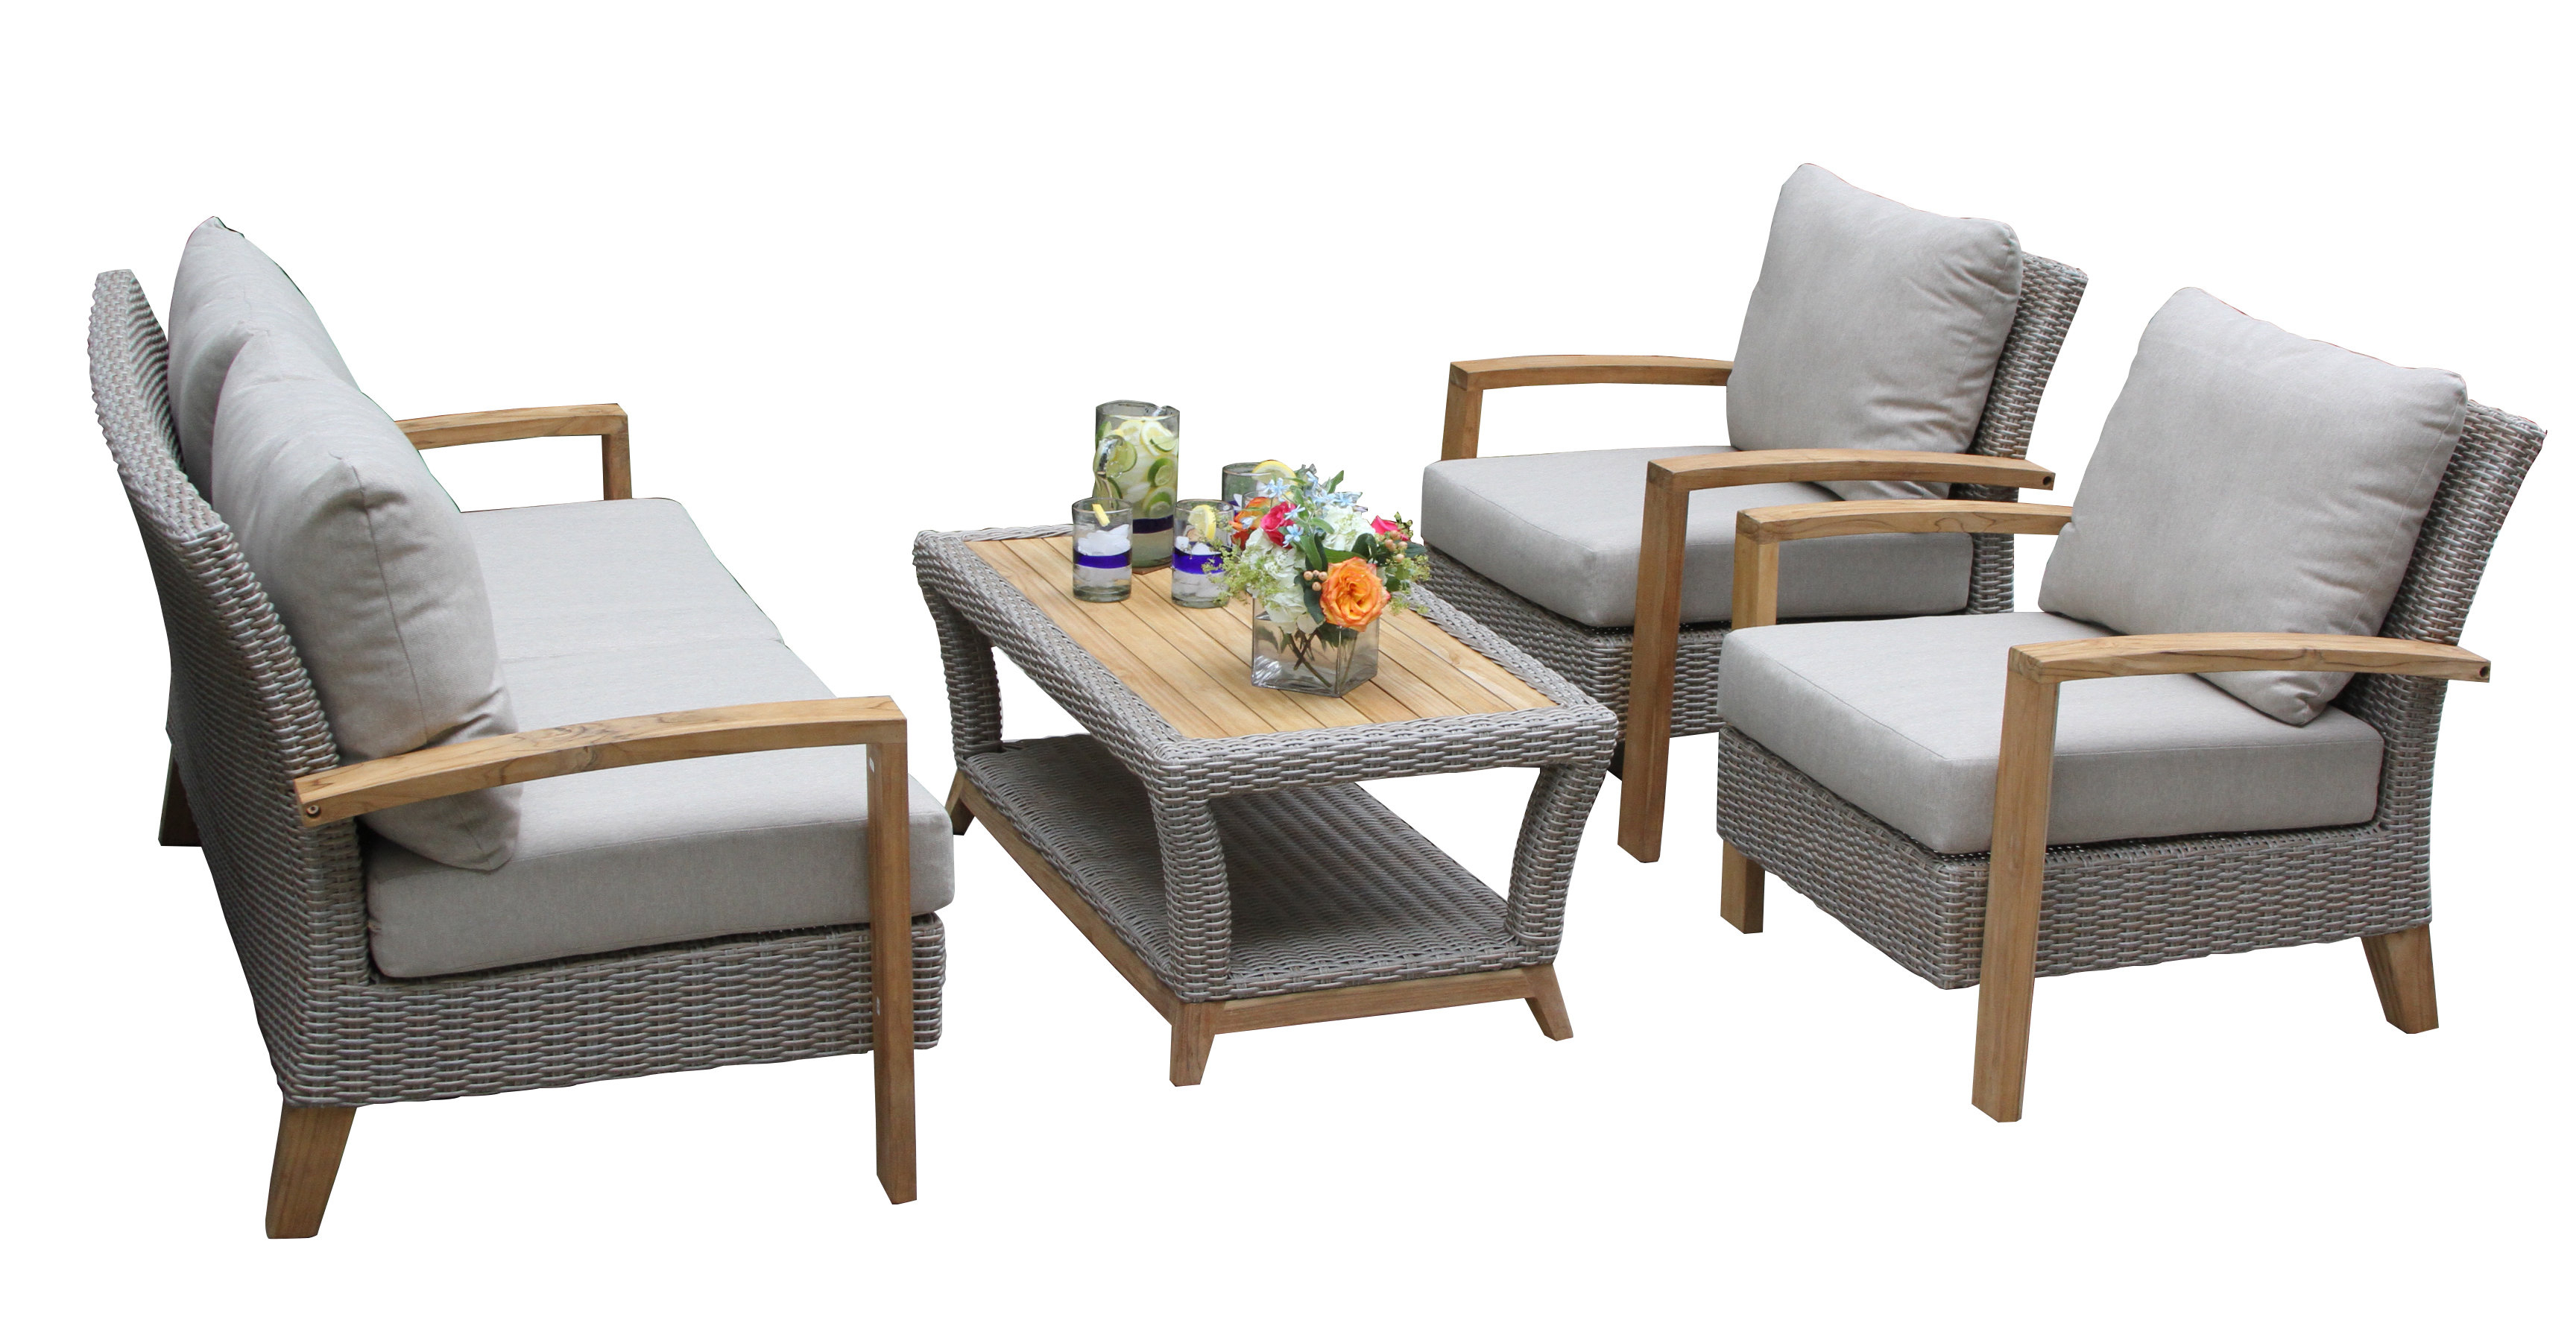 Dillard 4 Piece Rattan Sofa Seating Group With Cushions Intended For Favorite Elaina Cantilever Umbrellas (View 19 of 20)